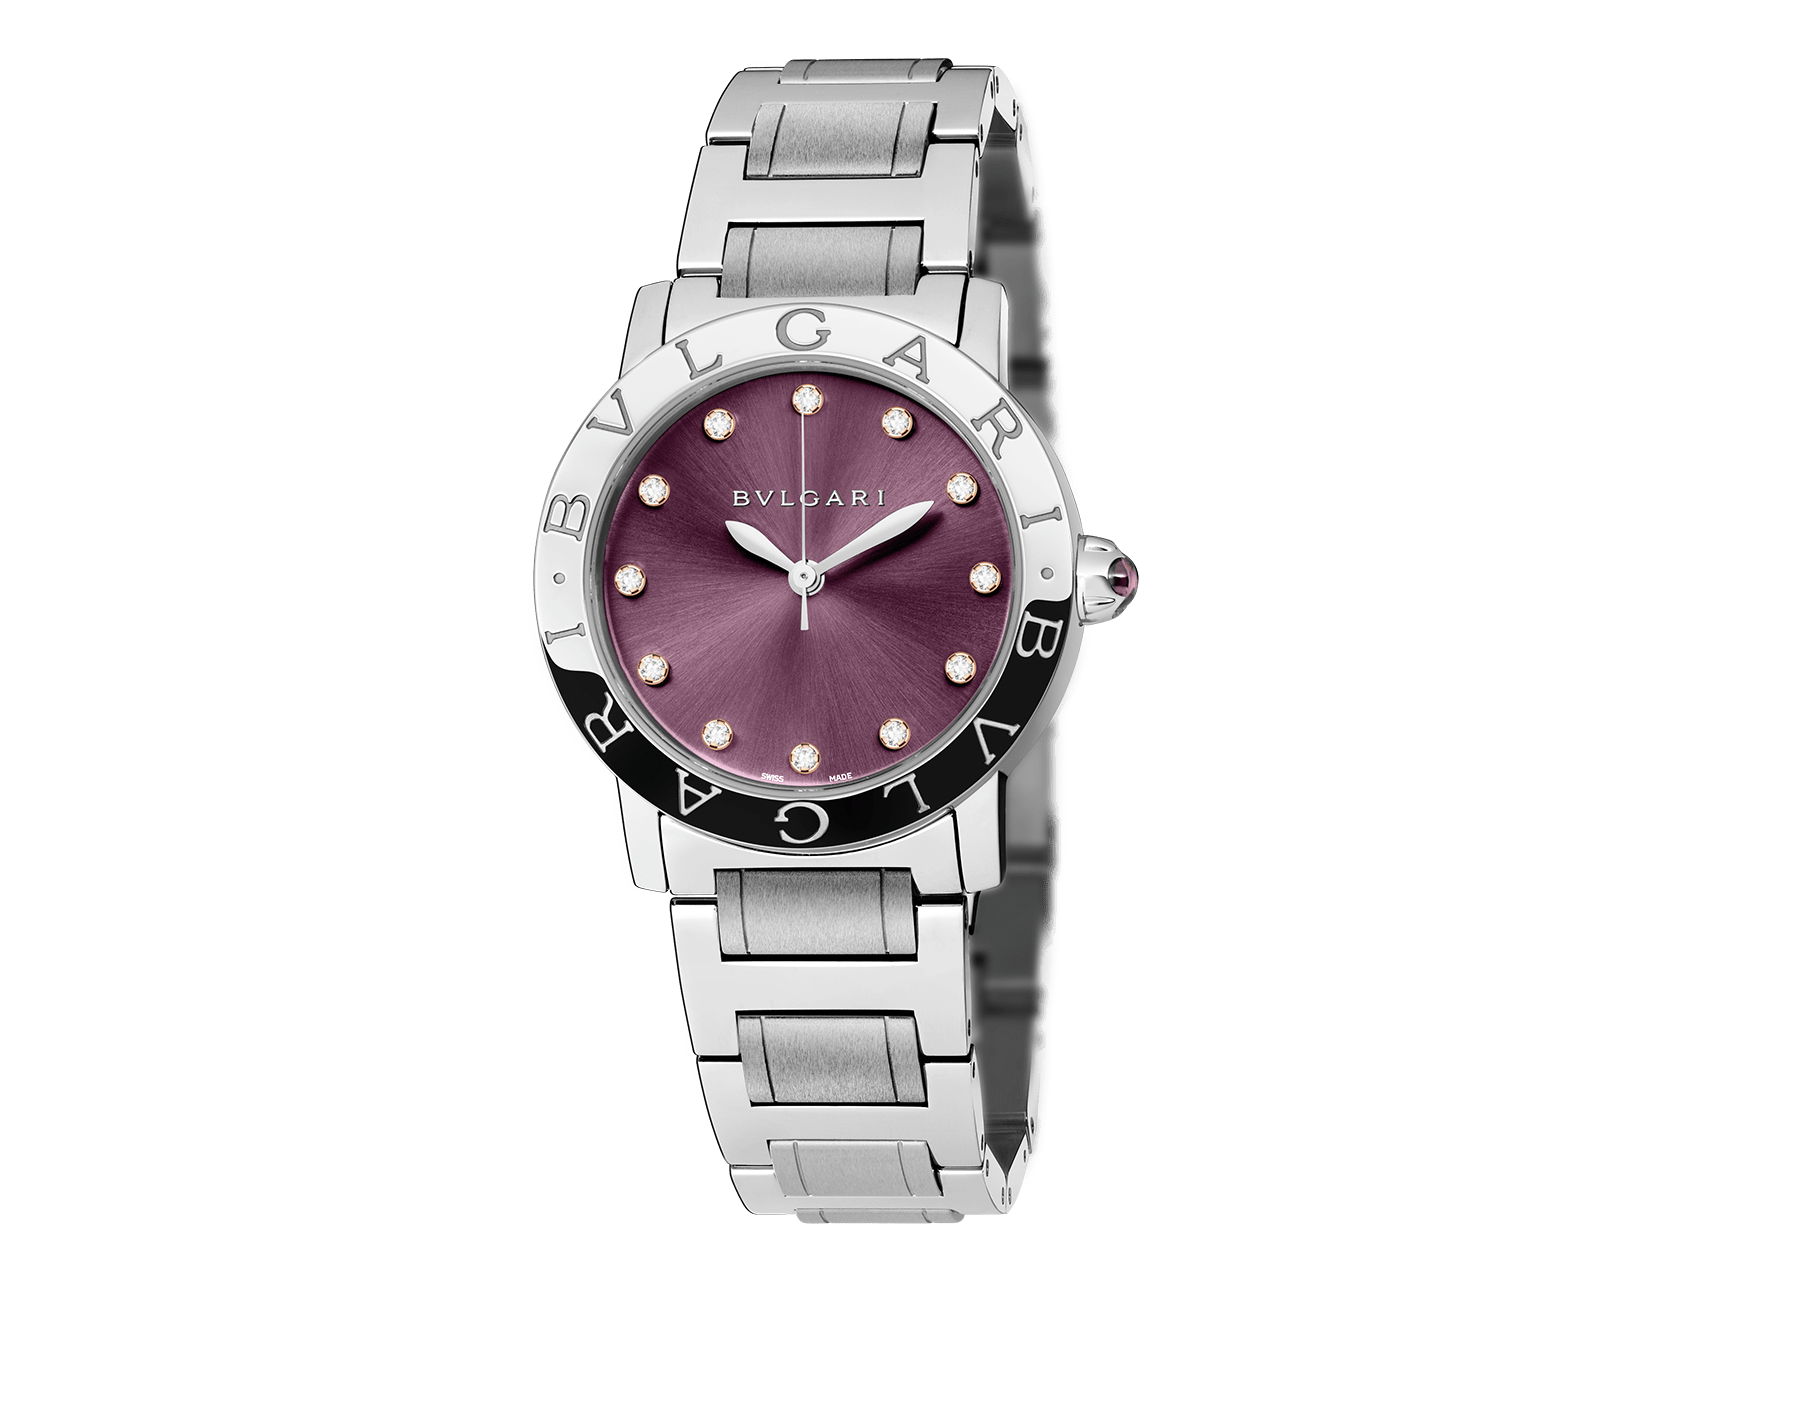 BVLGARI BVLGARI watch in stainless steel case and bracelet, with purple satiné soleil lacquered dial and diamond indexes 102607 image 1